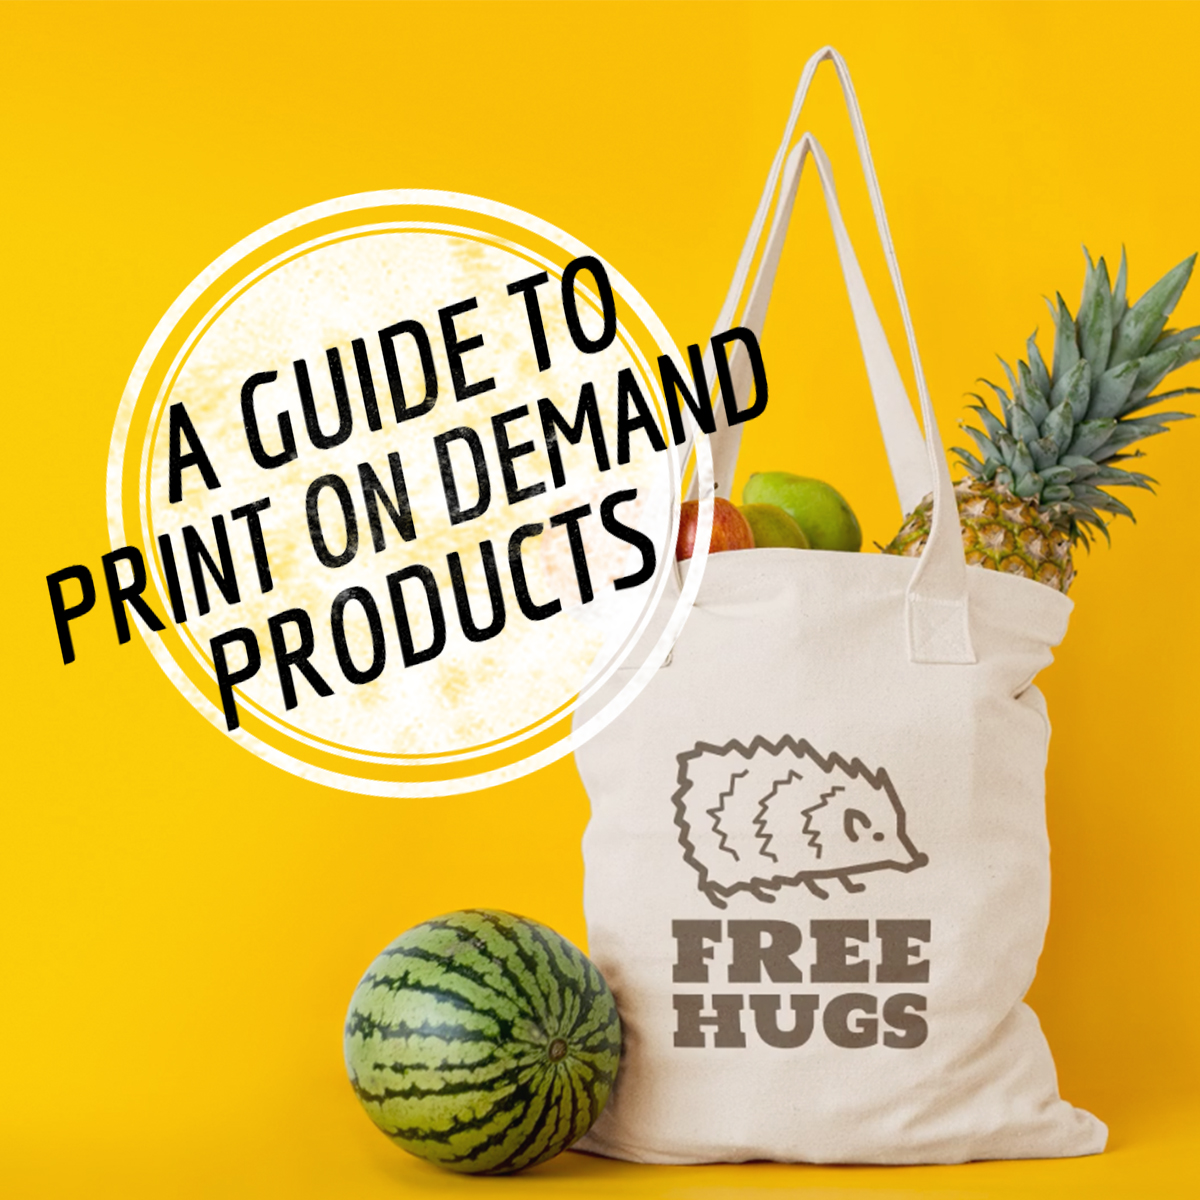 A Complete Guide To The Most Popular Print On Demand Products